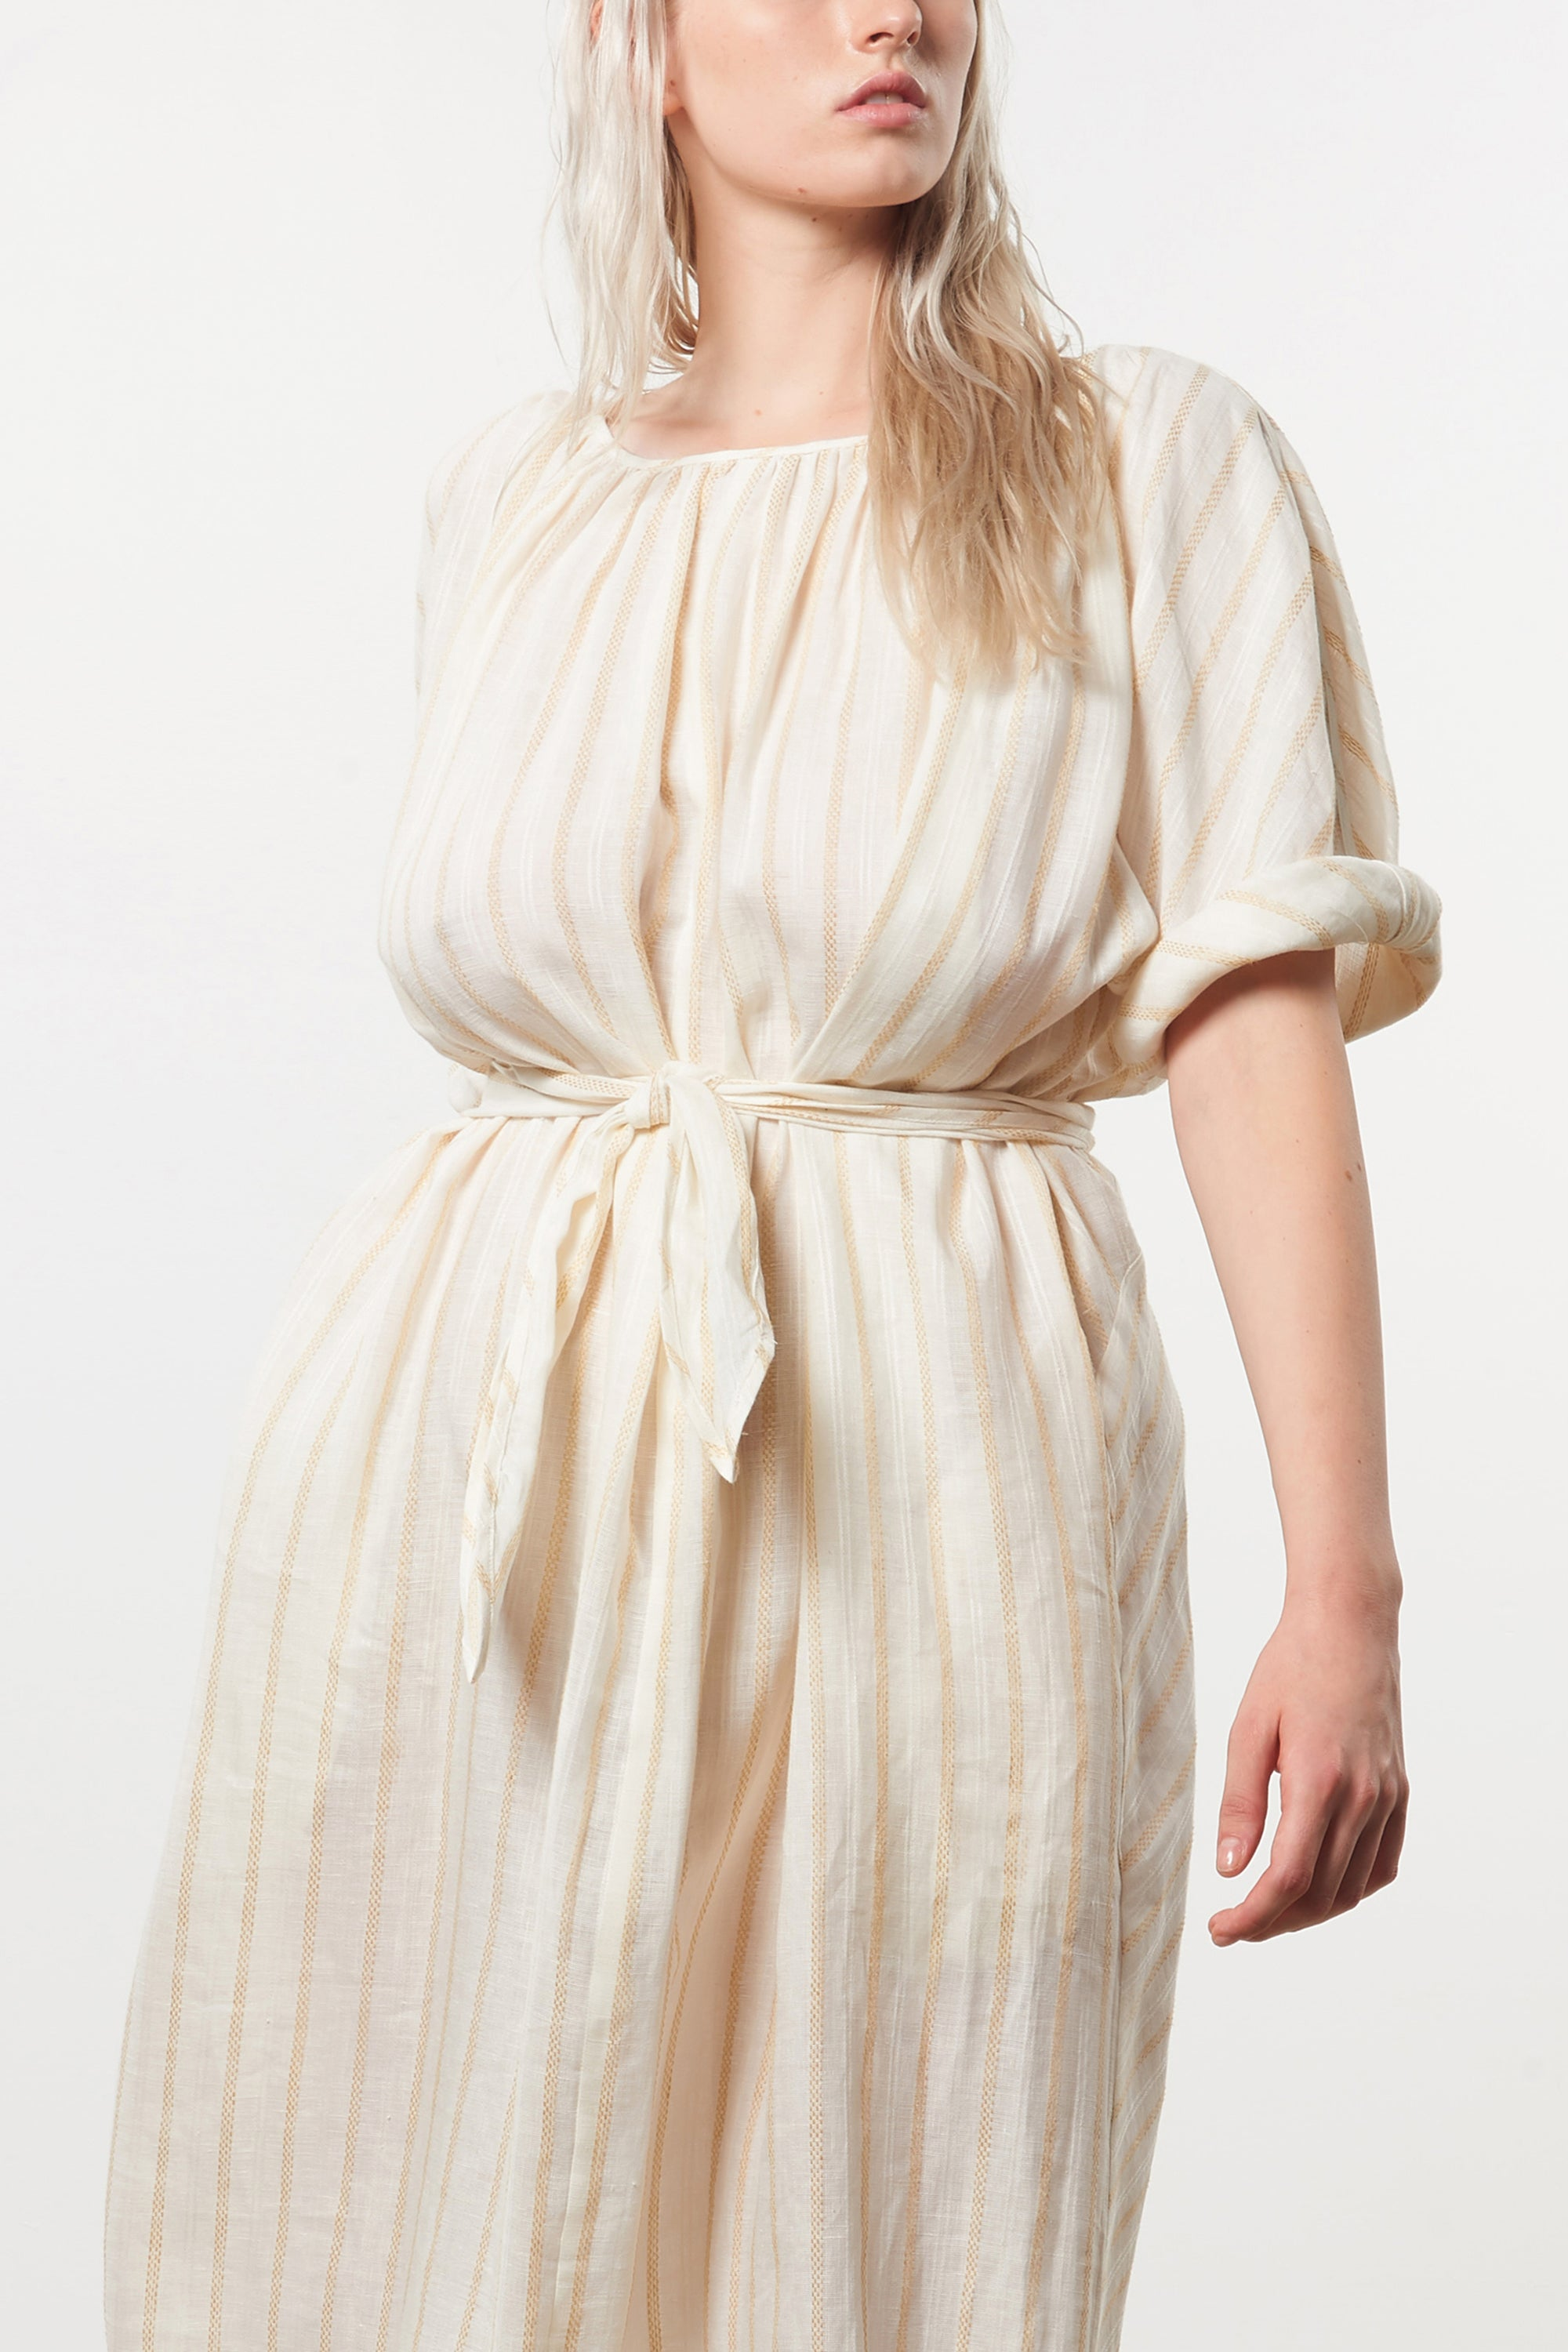 Mara Hoffman Extended Ivory Aliz Dress in linen-Tencel blend (waist detail)